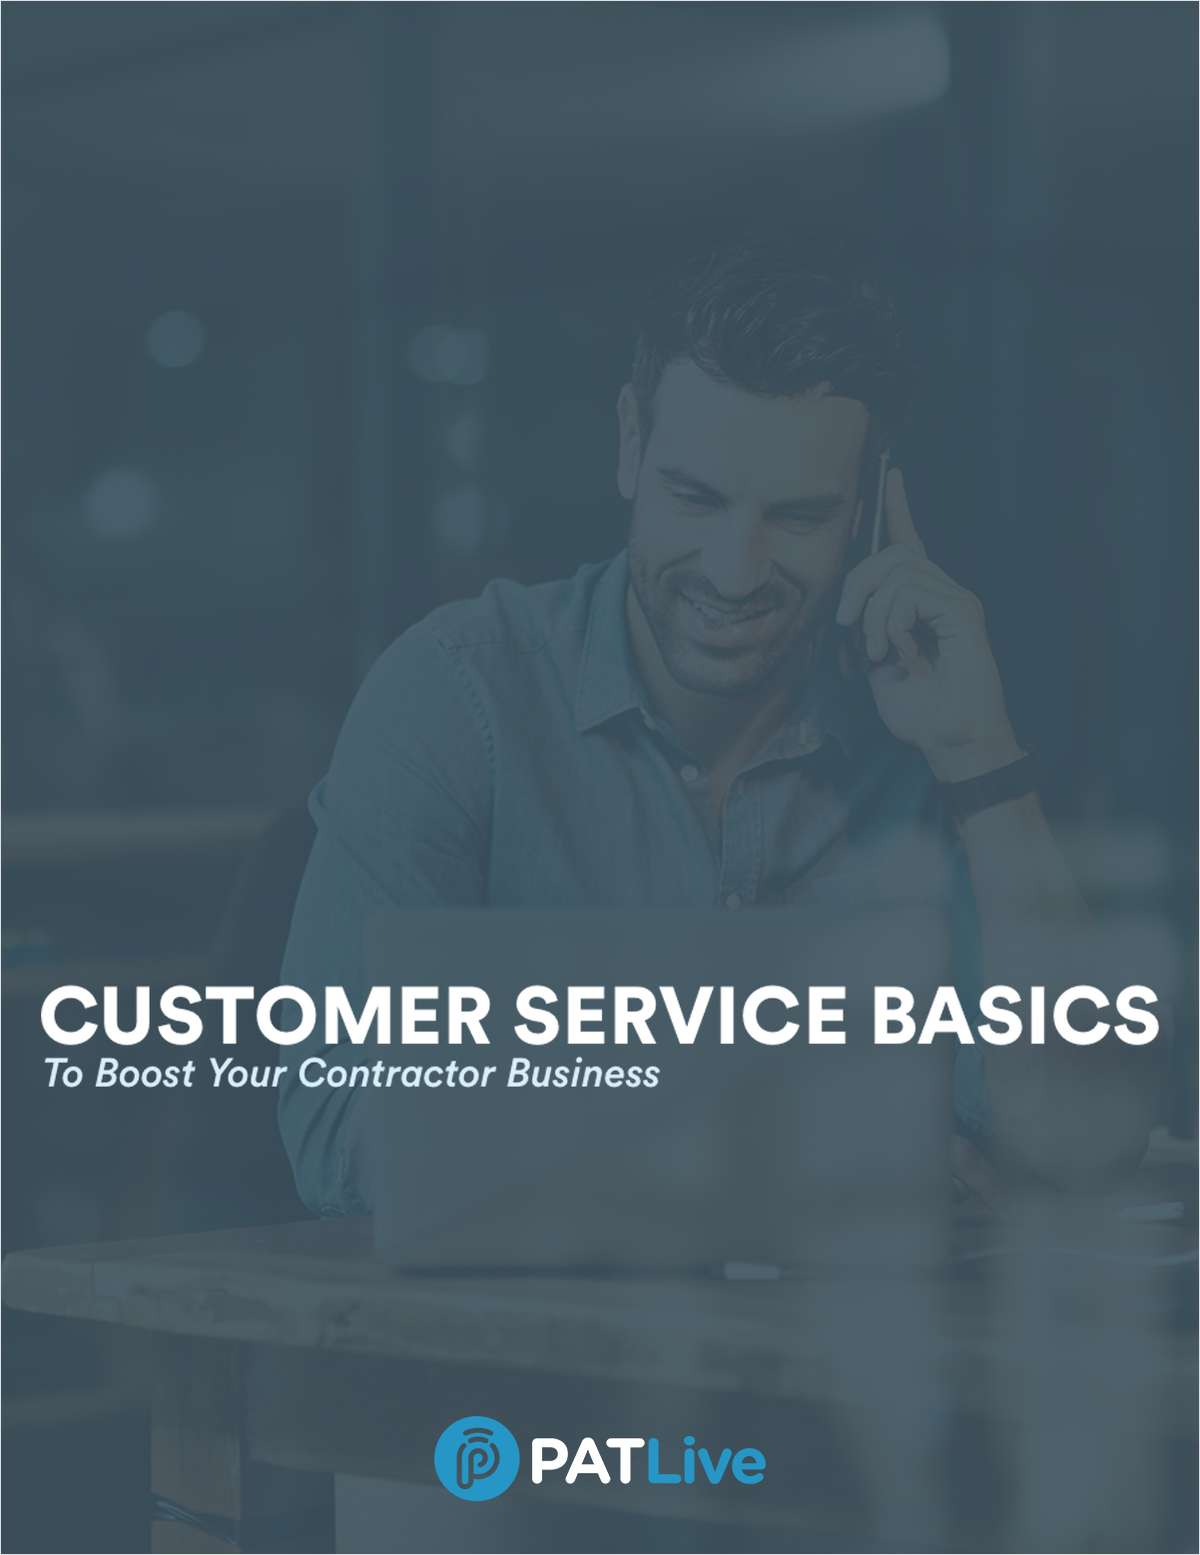 Customer Service Basics to Boost Your Contractor Business